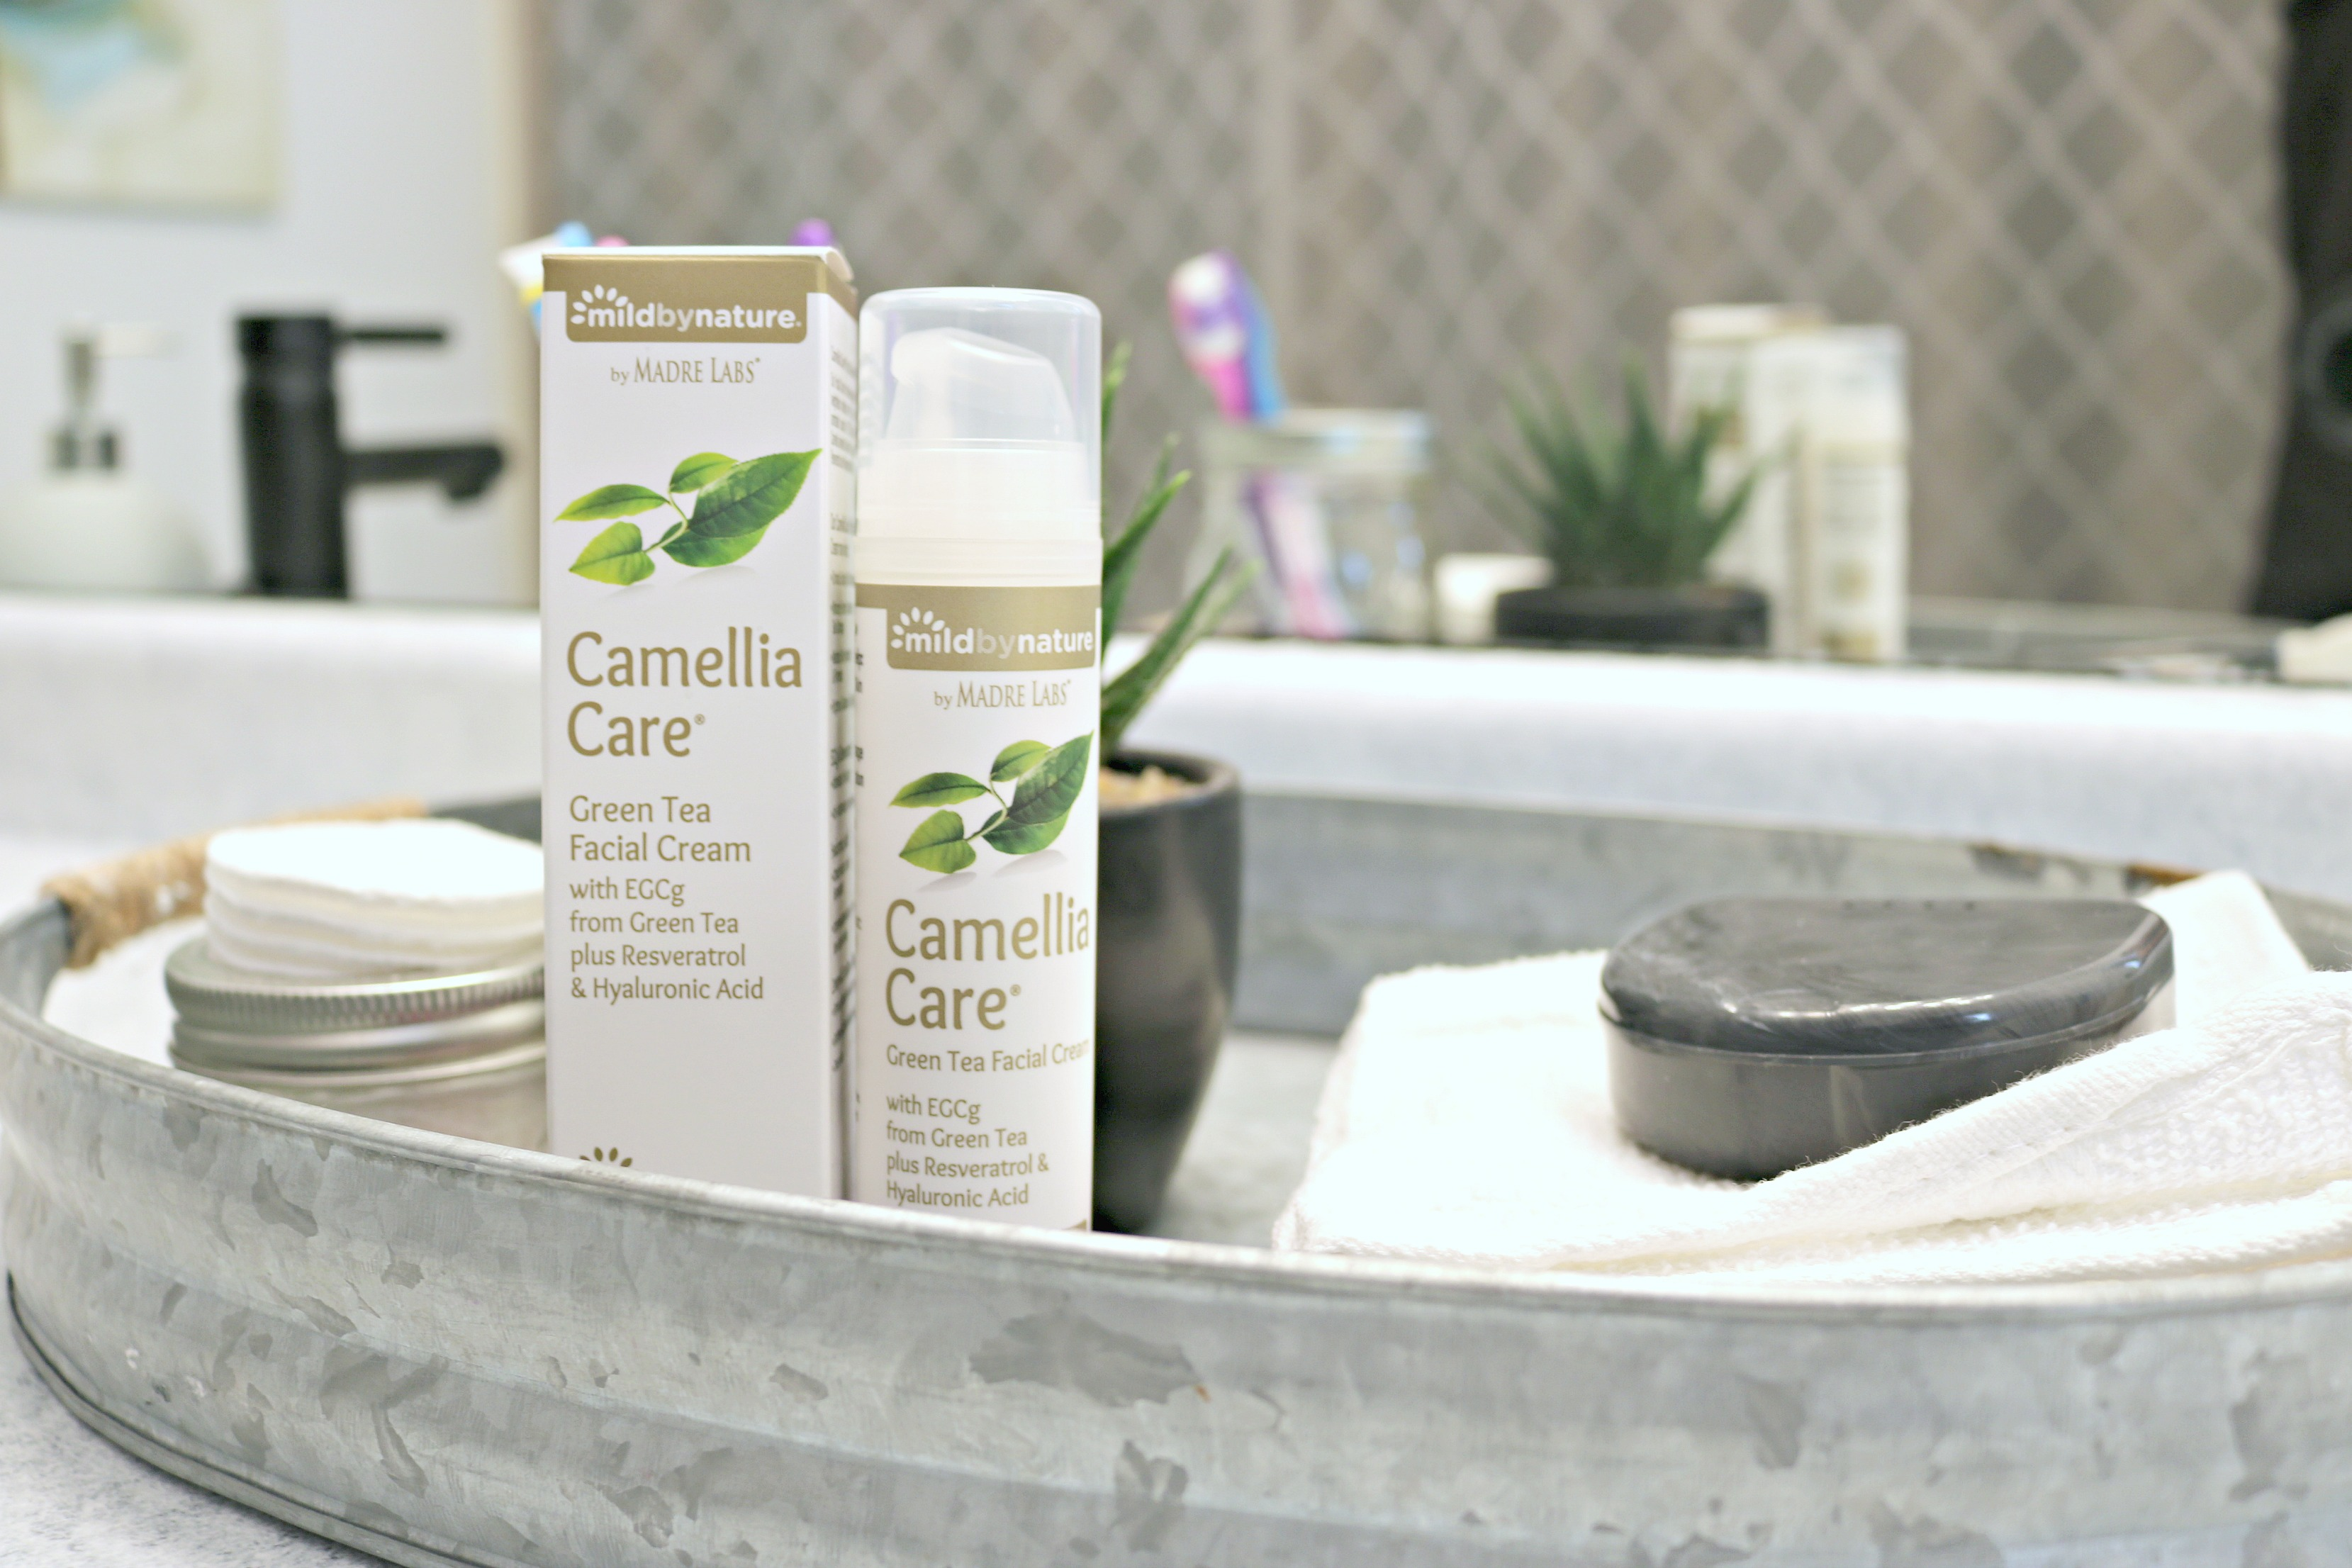 Camellia Care Green Tea Facial Cream in a washroom along with other necessities.